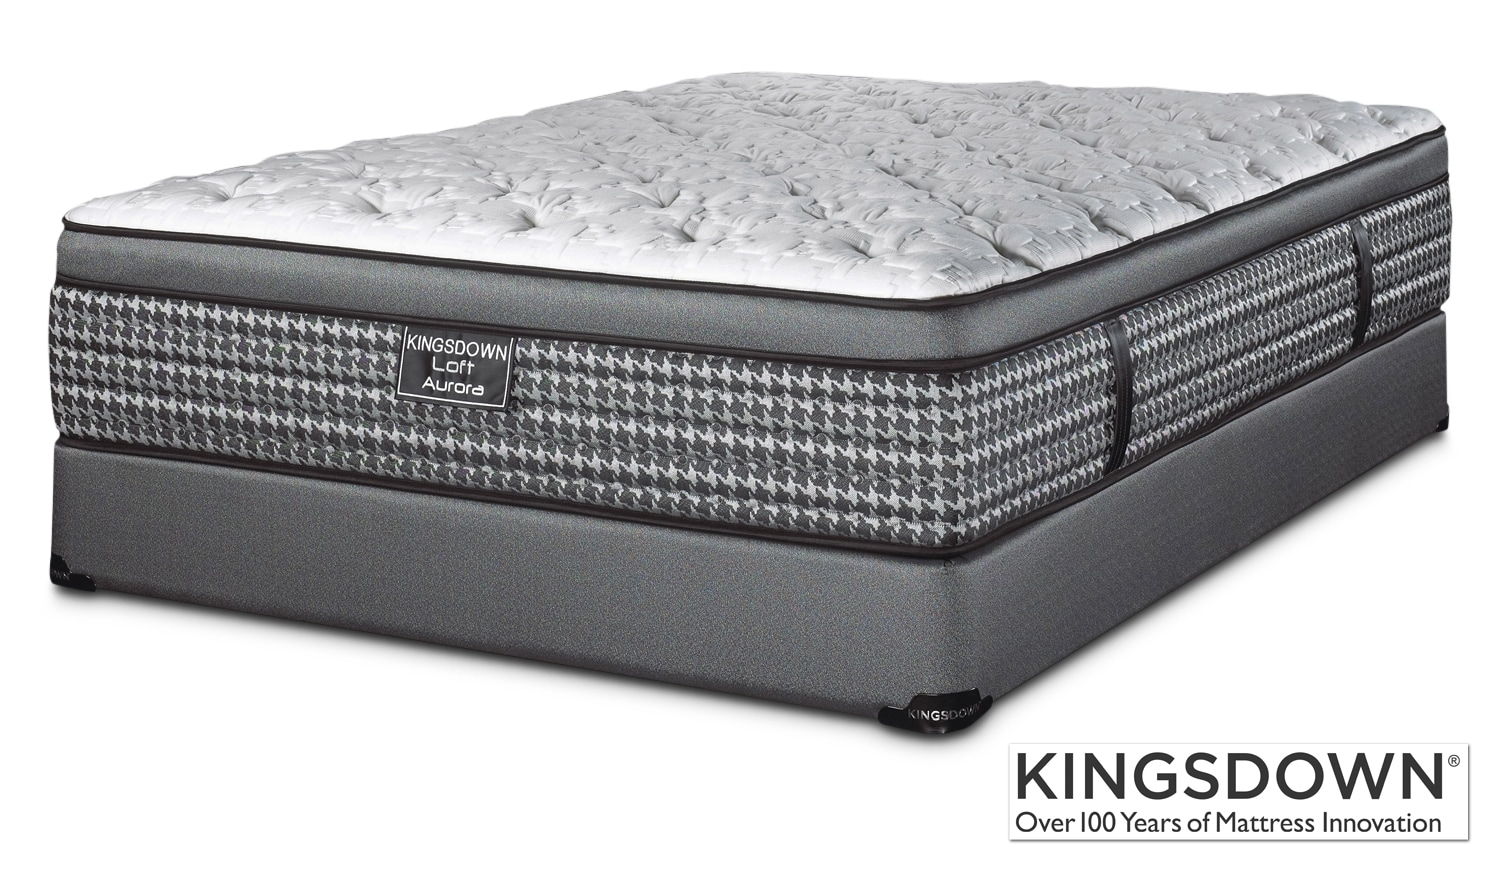 Kingsdown aurora queen mattress boxspring set leon 39 s Queen bed and mattress